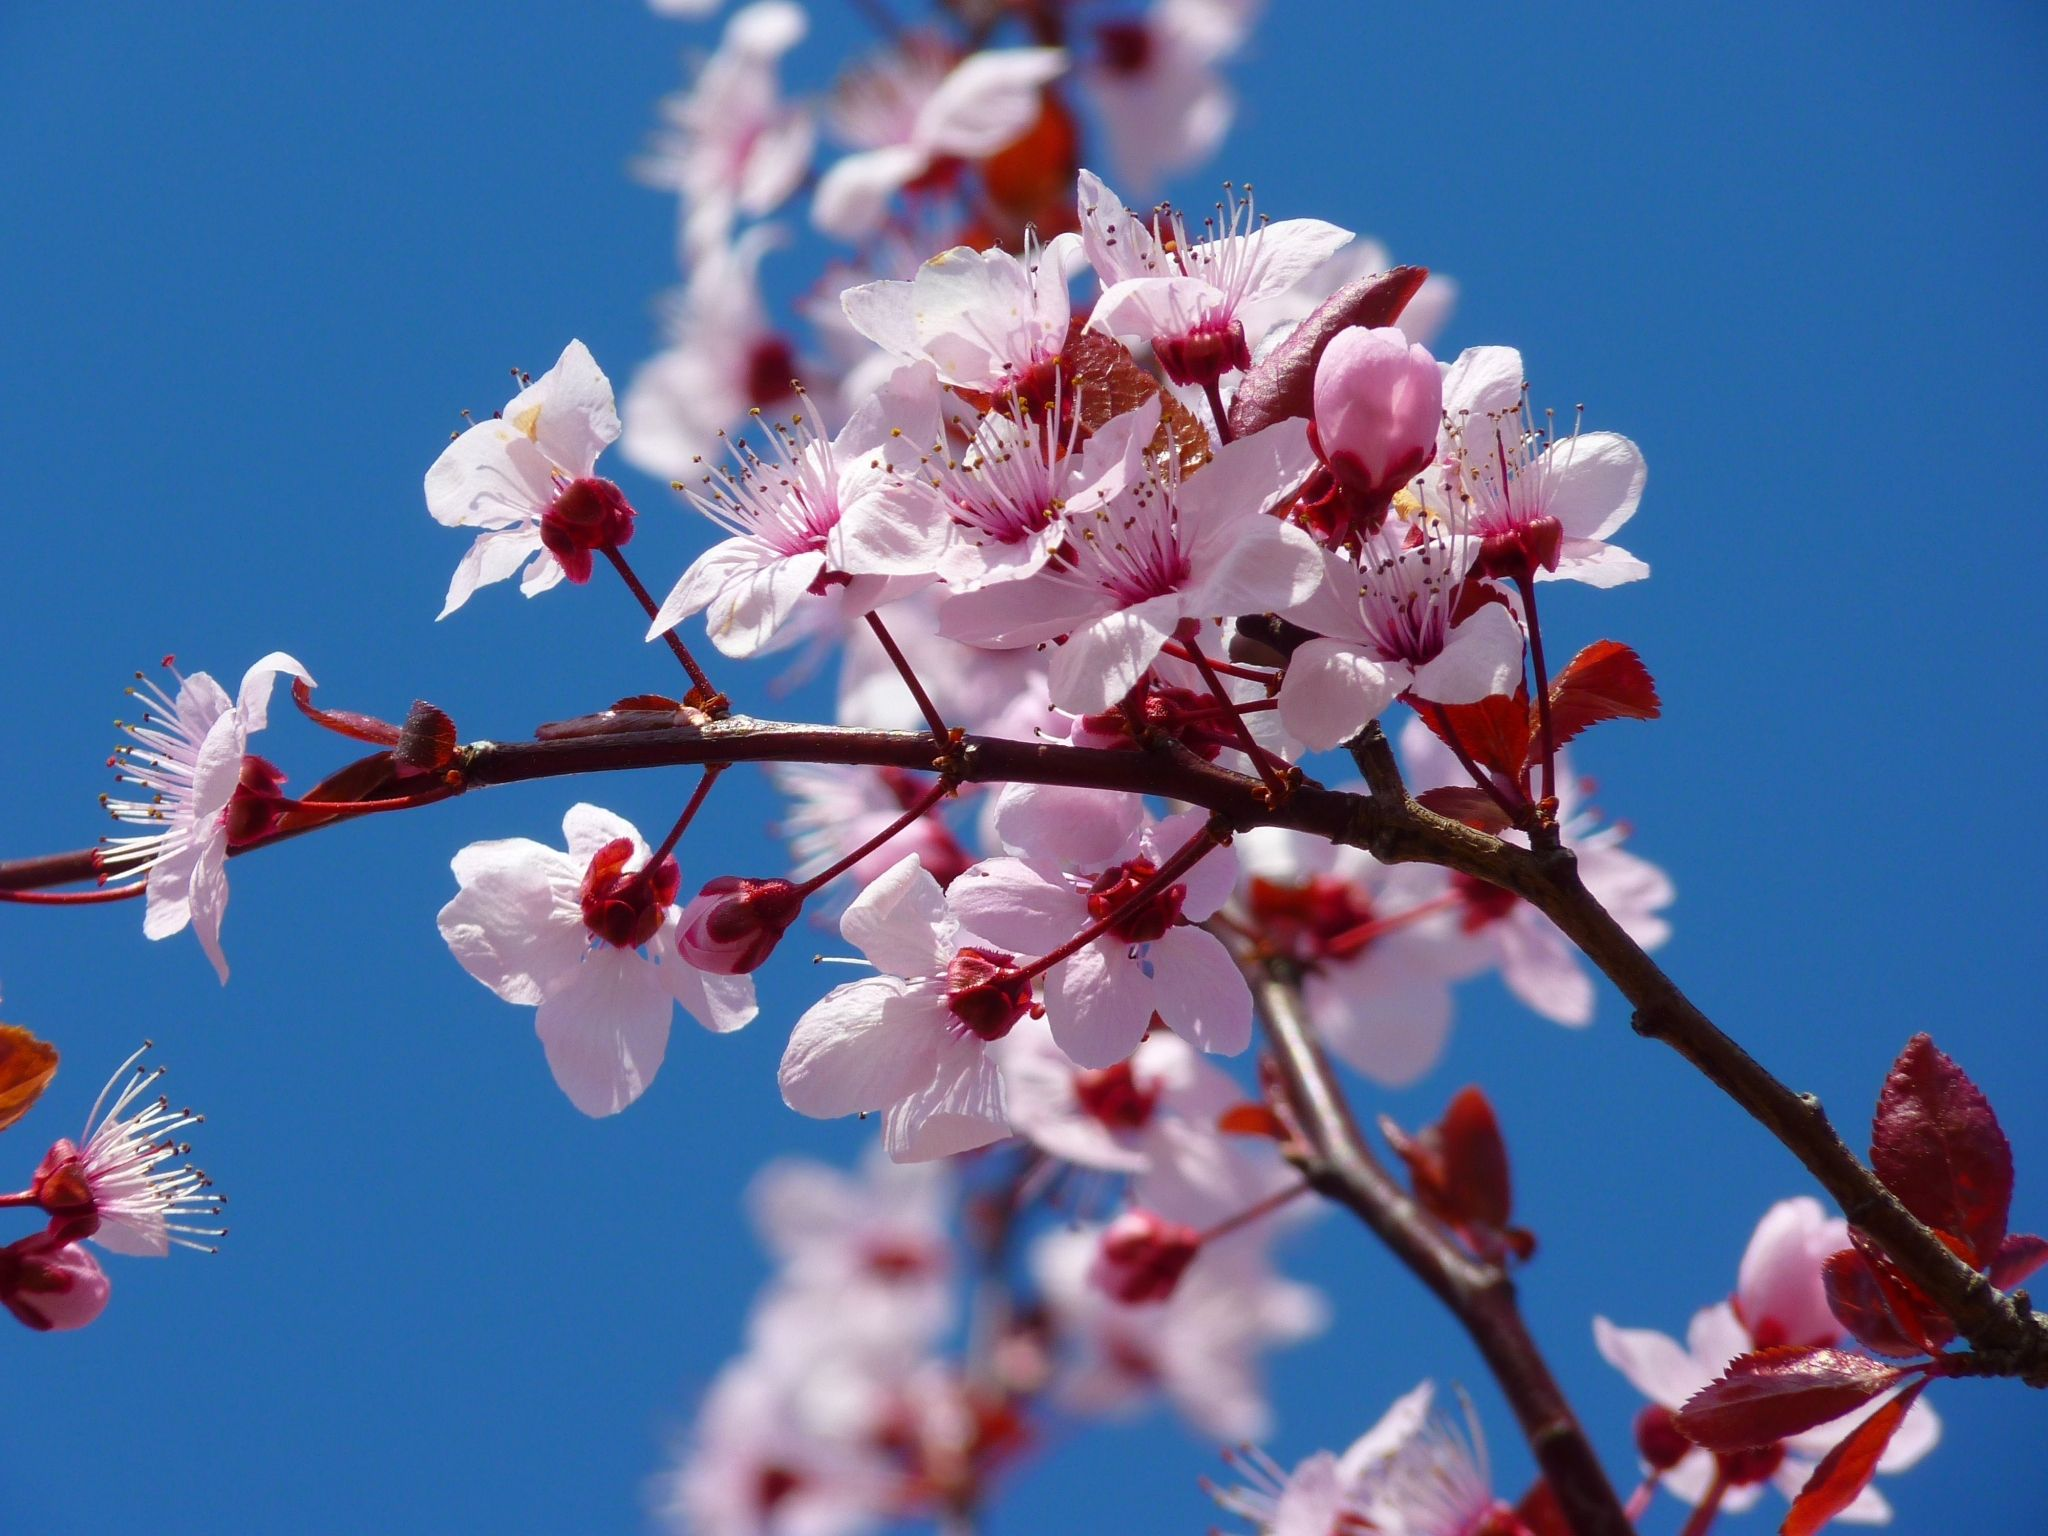 Cherry Blossom Photos Wallpapers Japanese Cherry Tree Japanese Cherry Blossom Almond Blossom